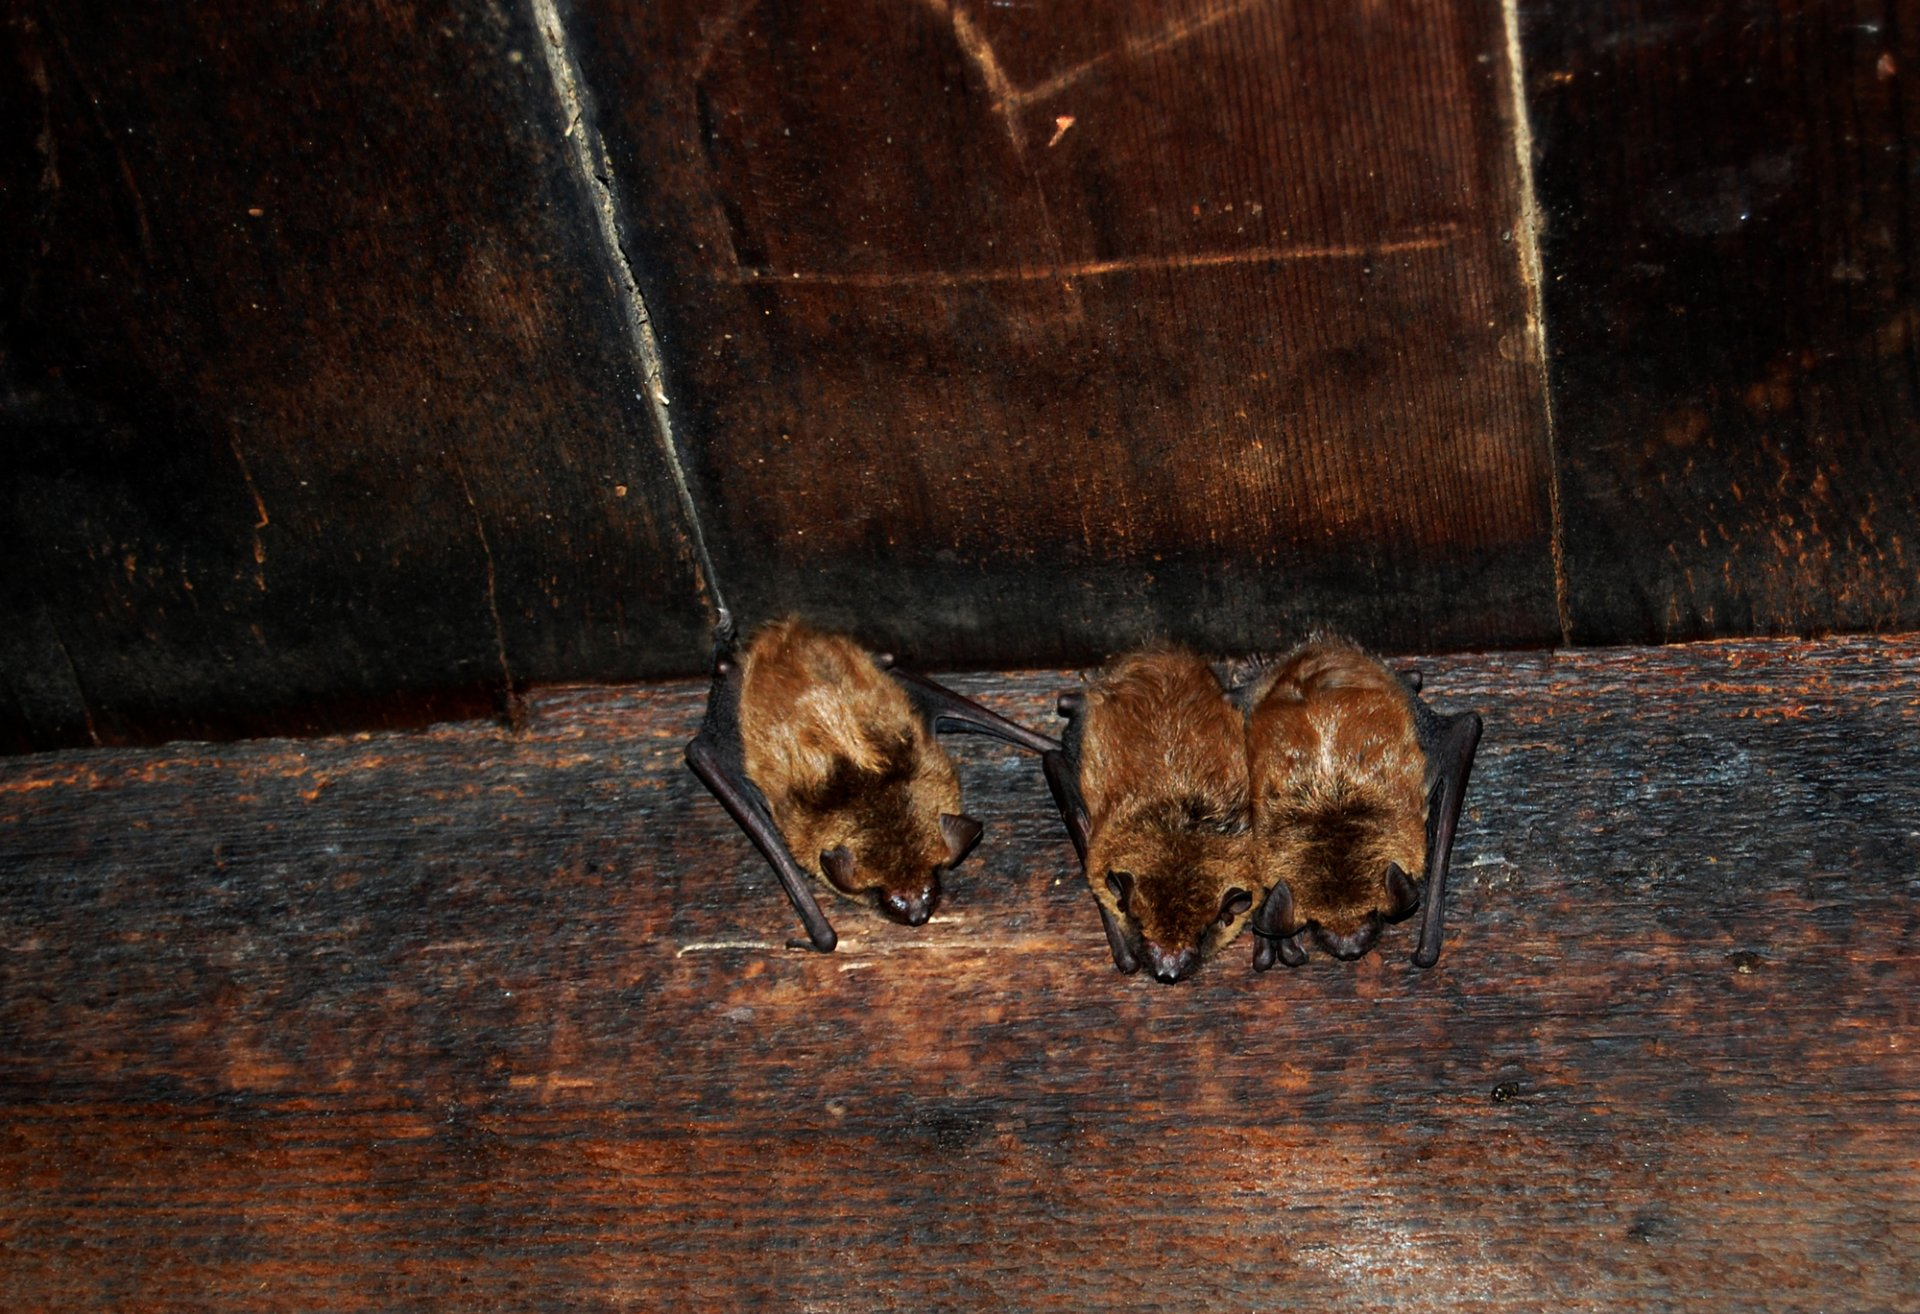 bat removal usa - bats roosting in the attic